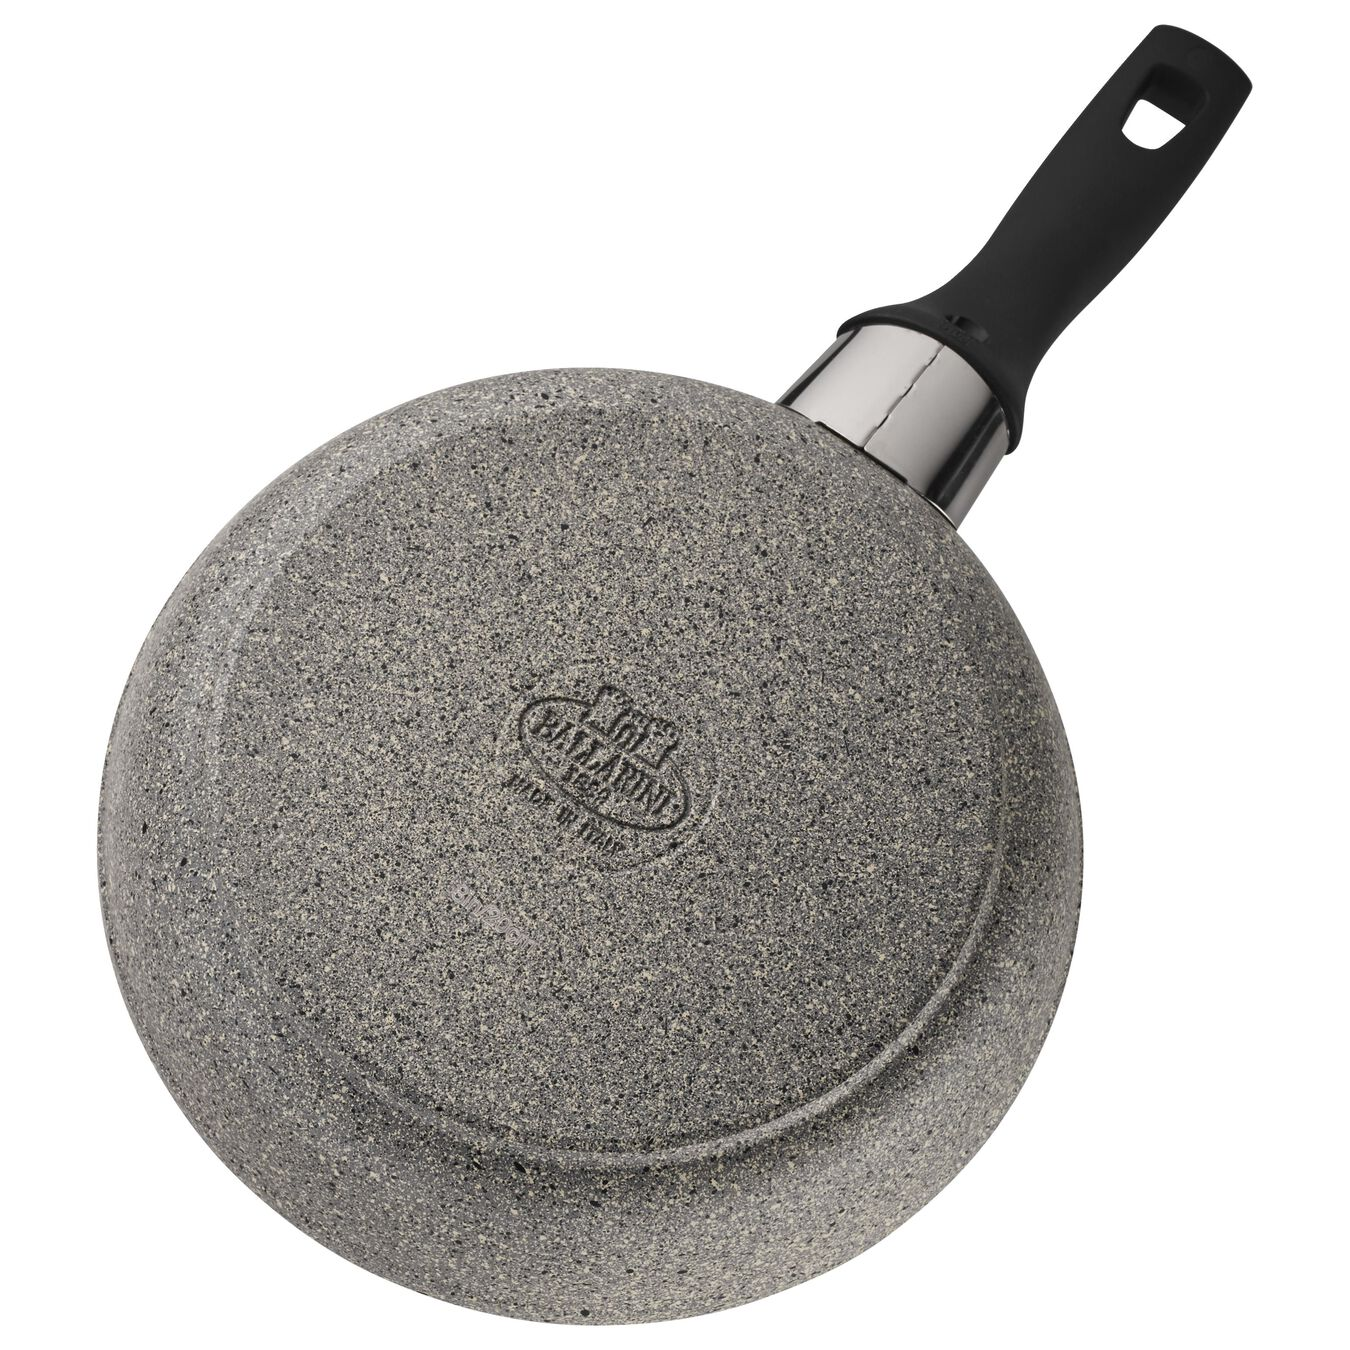 8-inch Nonstick Fry Pan,,large 2